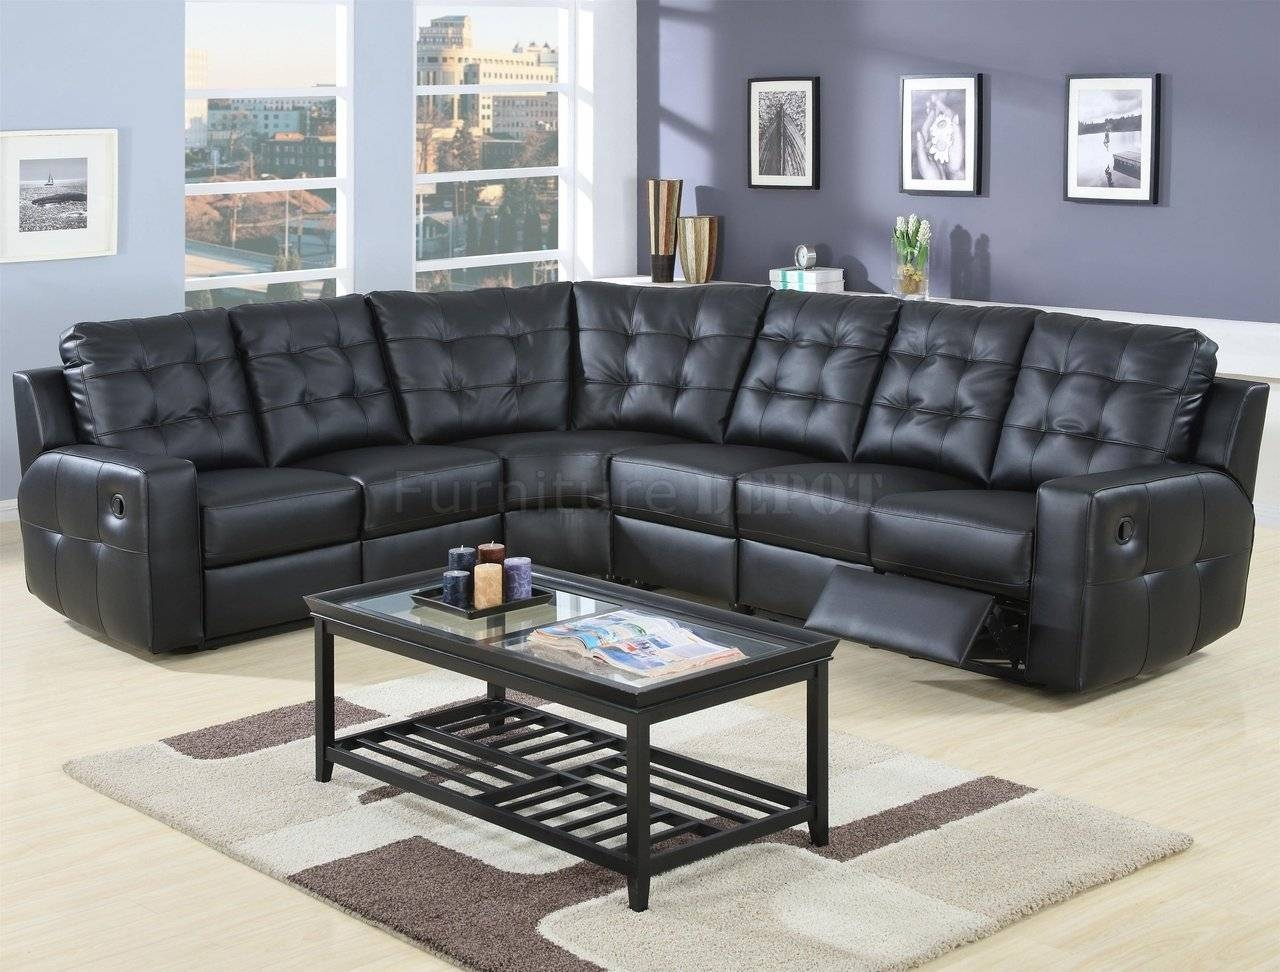 Furniture: Jedd Fabric Reclining Sectional Sofa | Sectional for Jedd Fabric Reclining Sectional Sofa (Image 11 of 30)